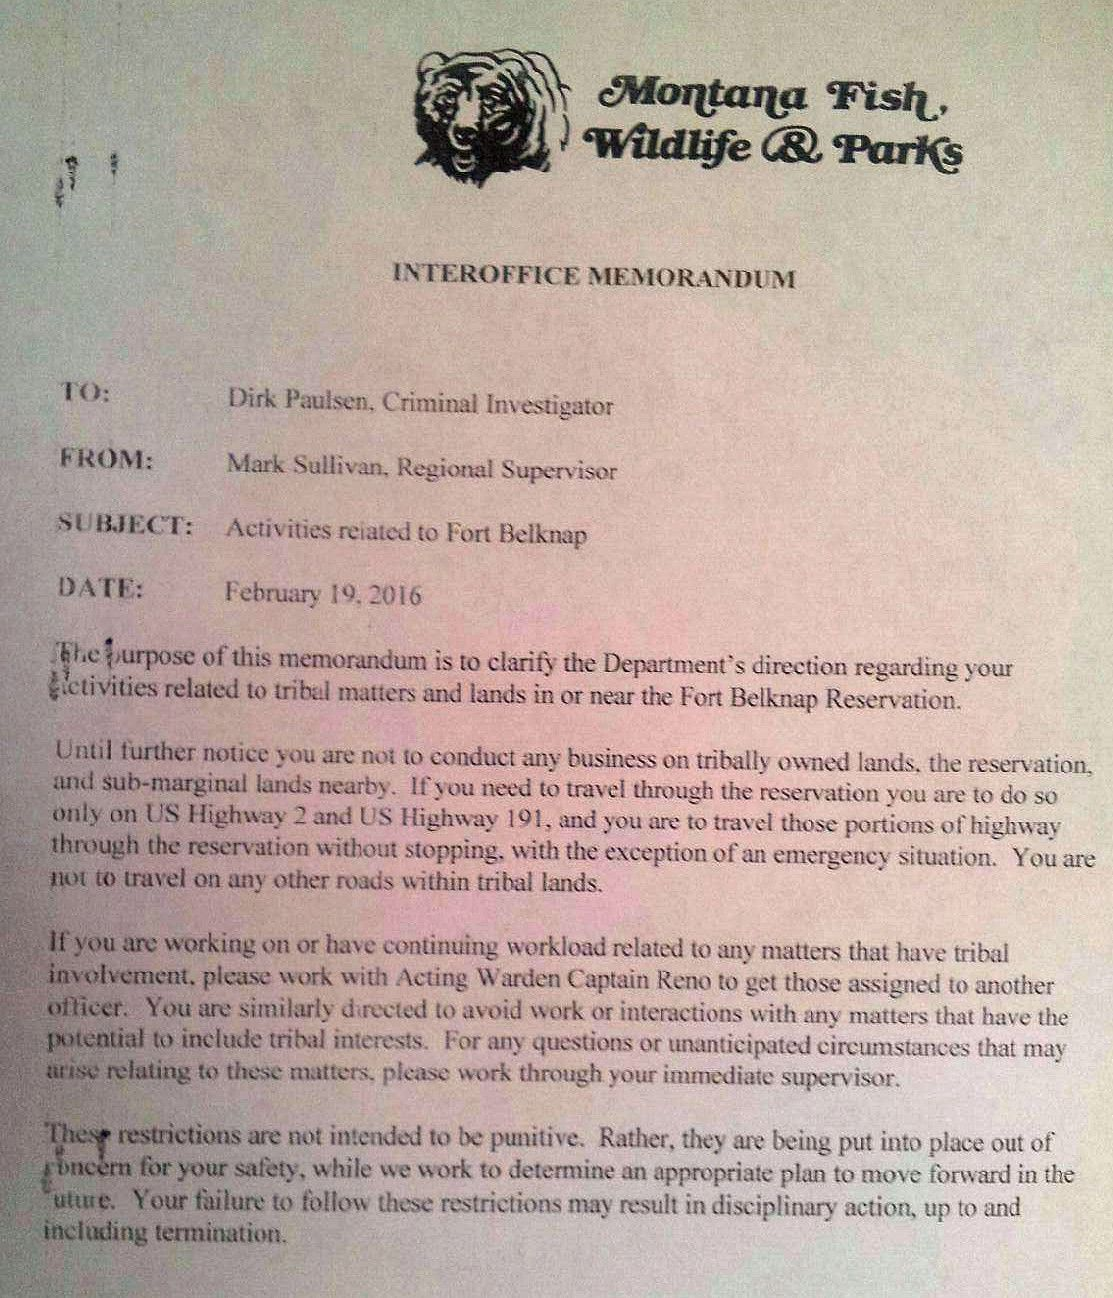 Montana blaine county hays - Letter Requires Fwp Investigator To Avoid Tribal Land Cases